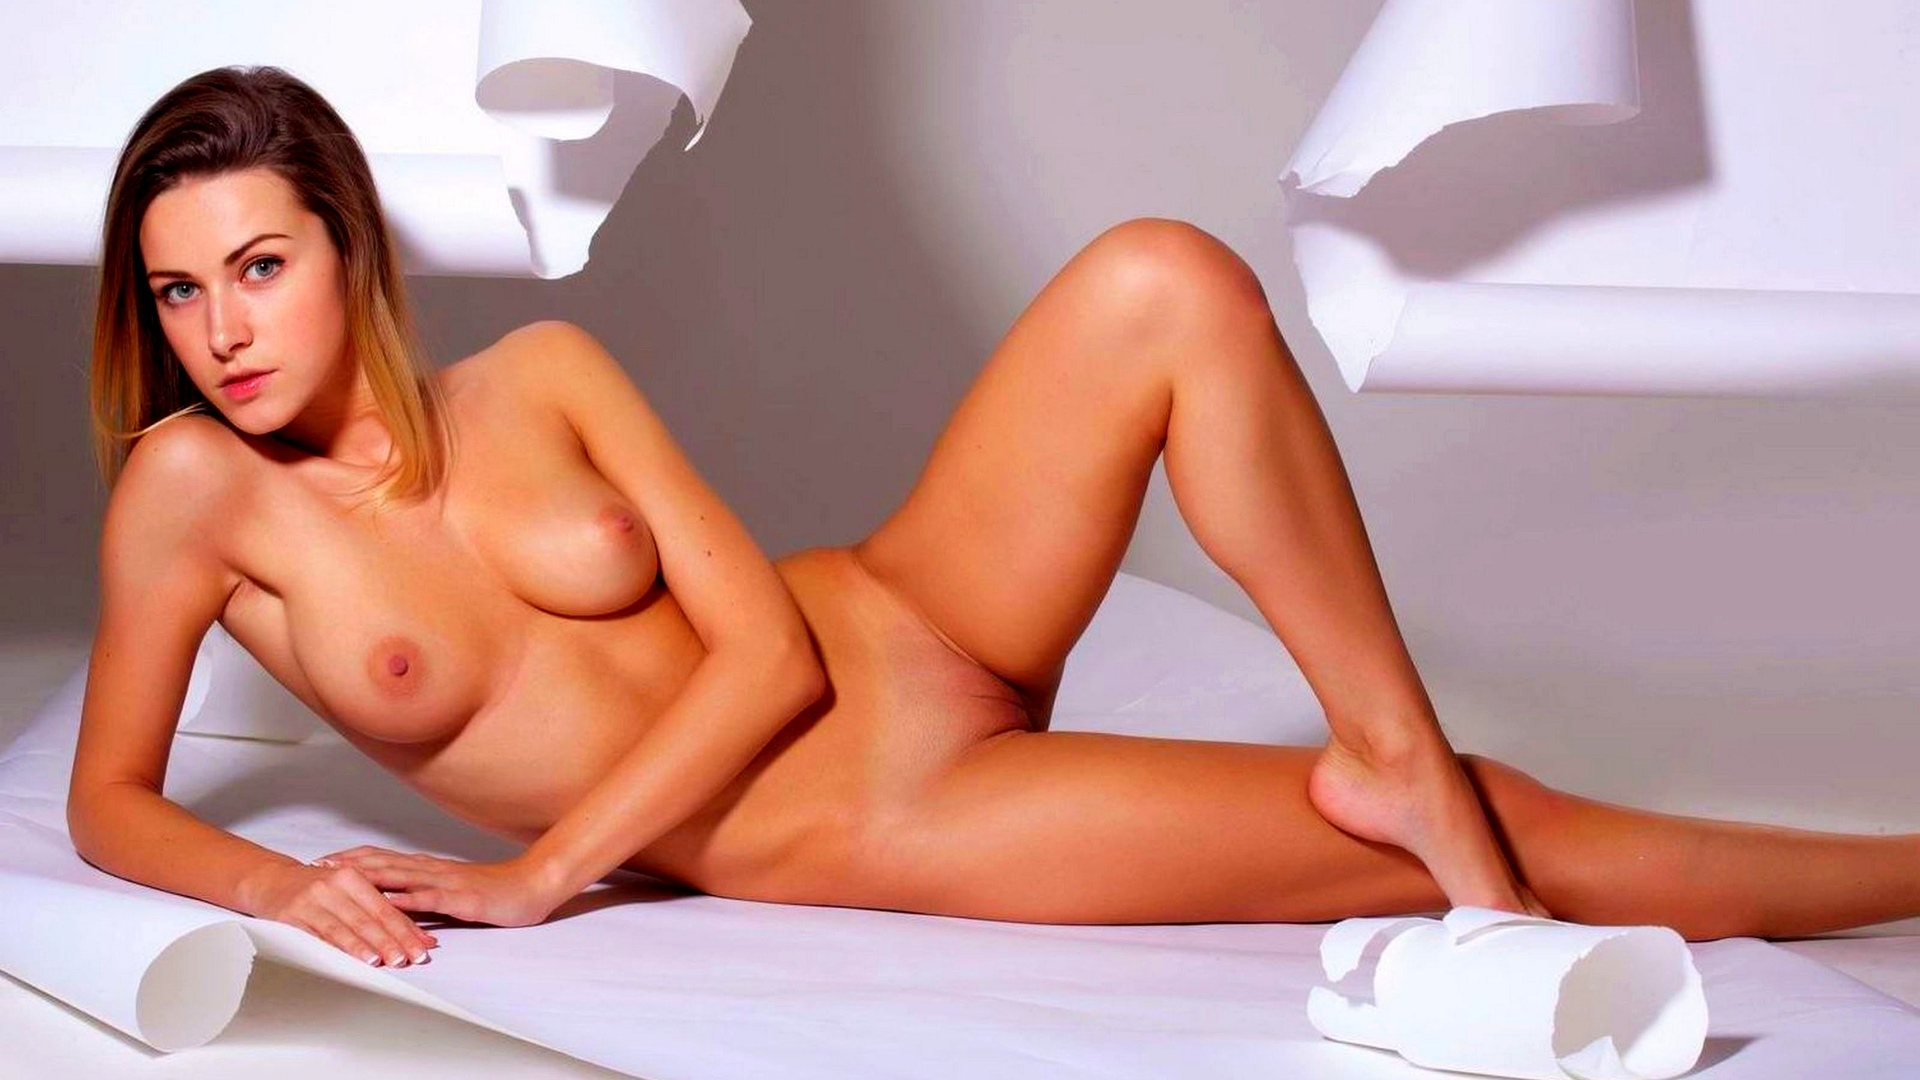 nude-pic-of-models